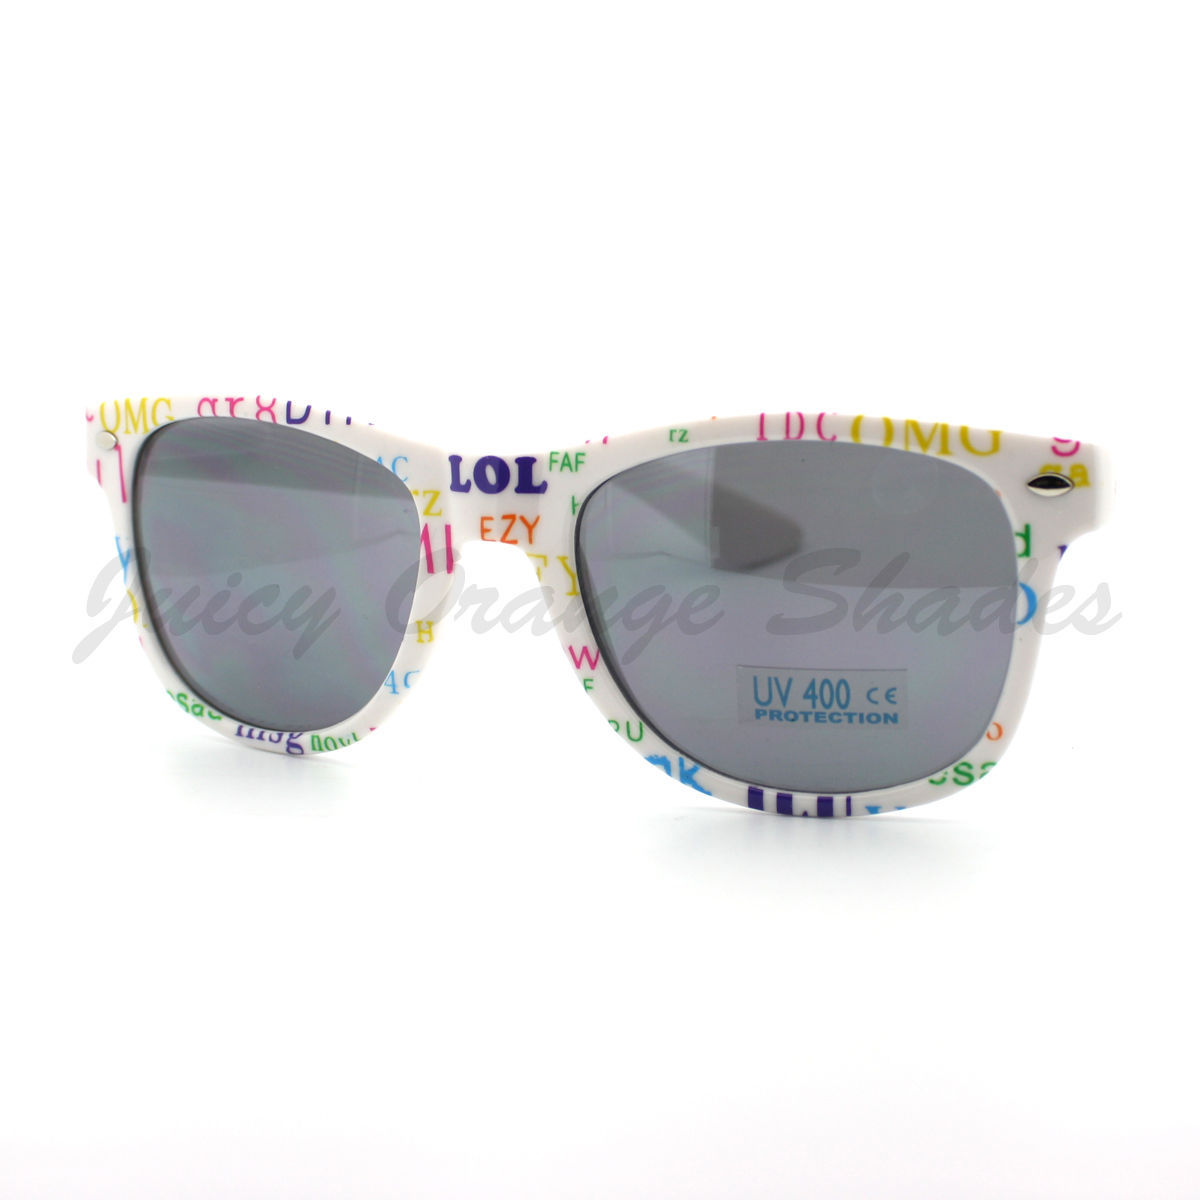 Chitchat Text Prints Sunglasses Classic Horn Rimmed Frame (Spring Hinge)